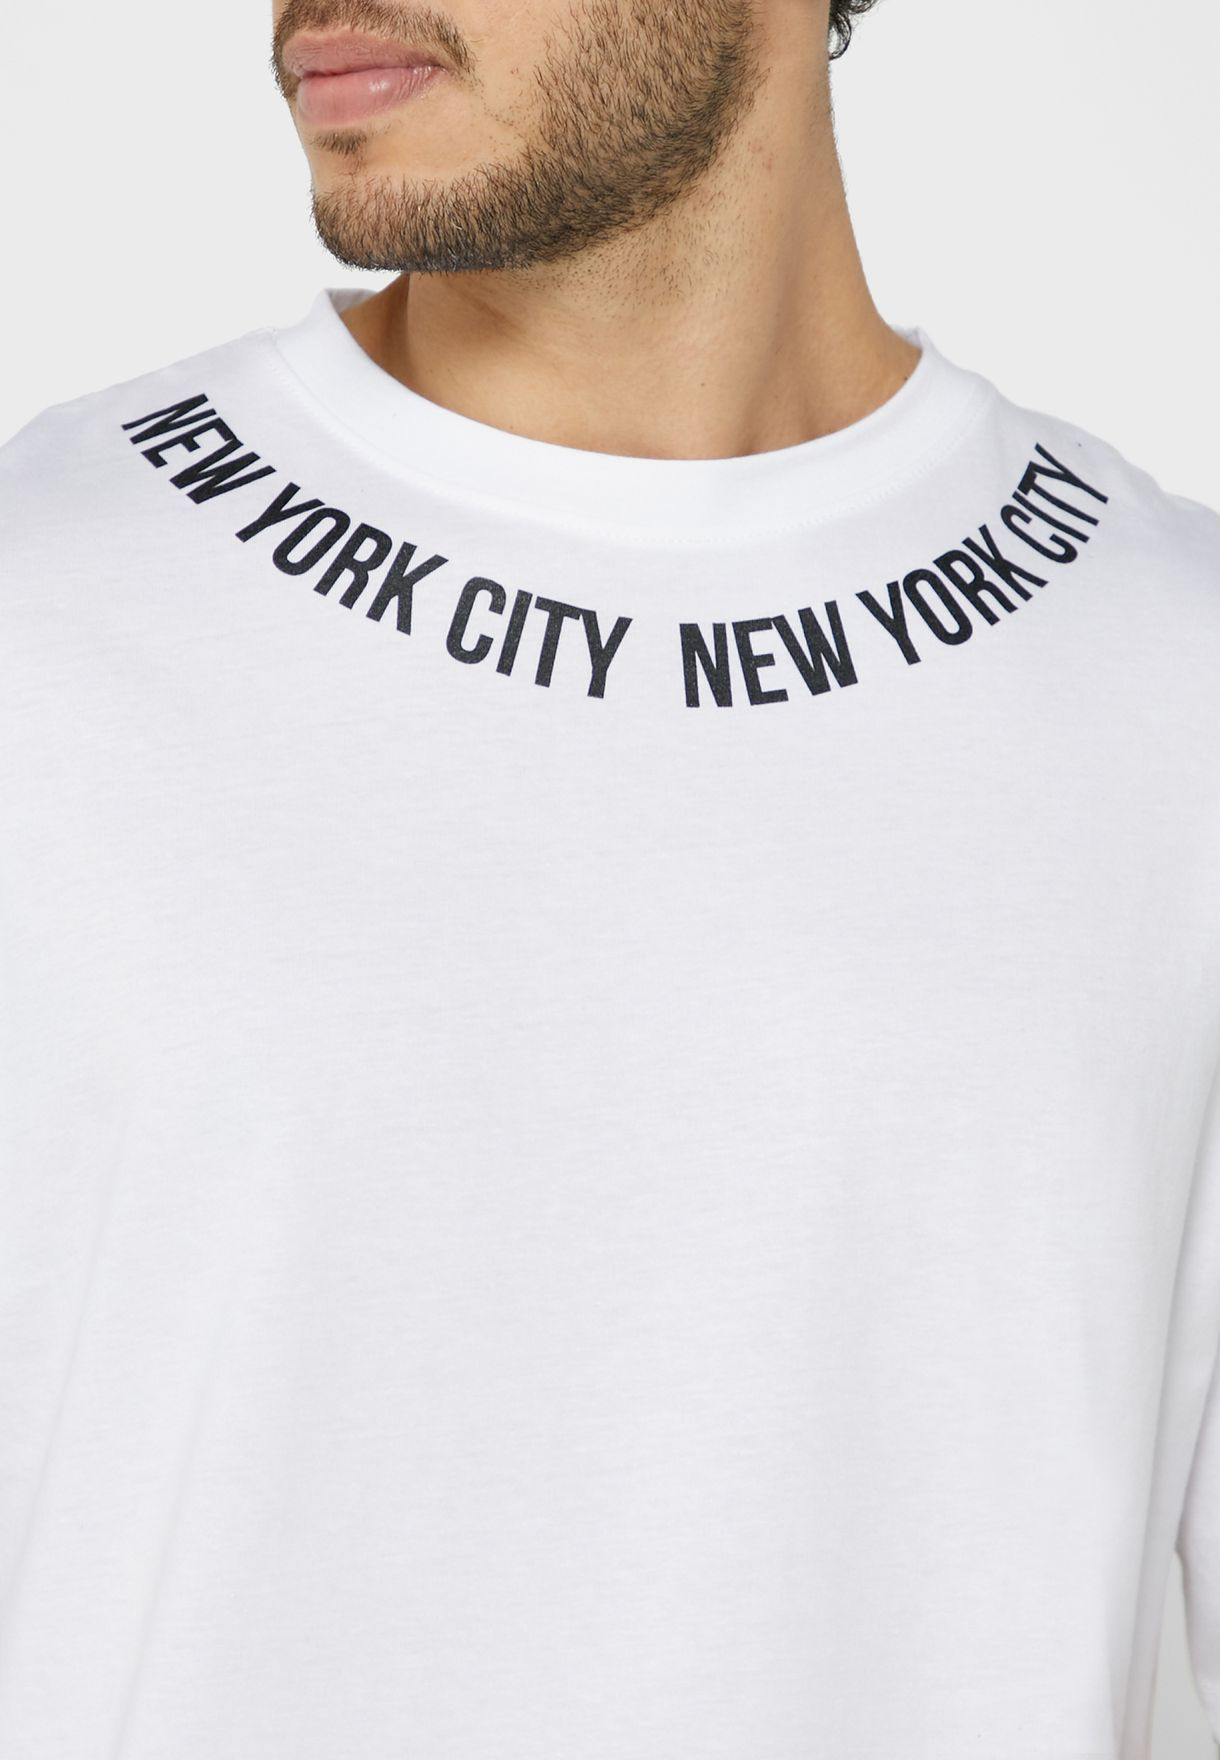 New York City T Shirt